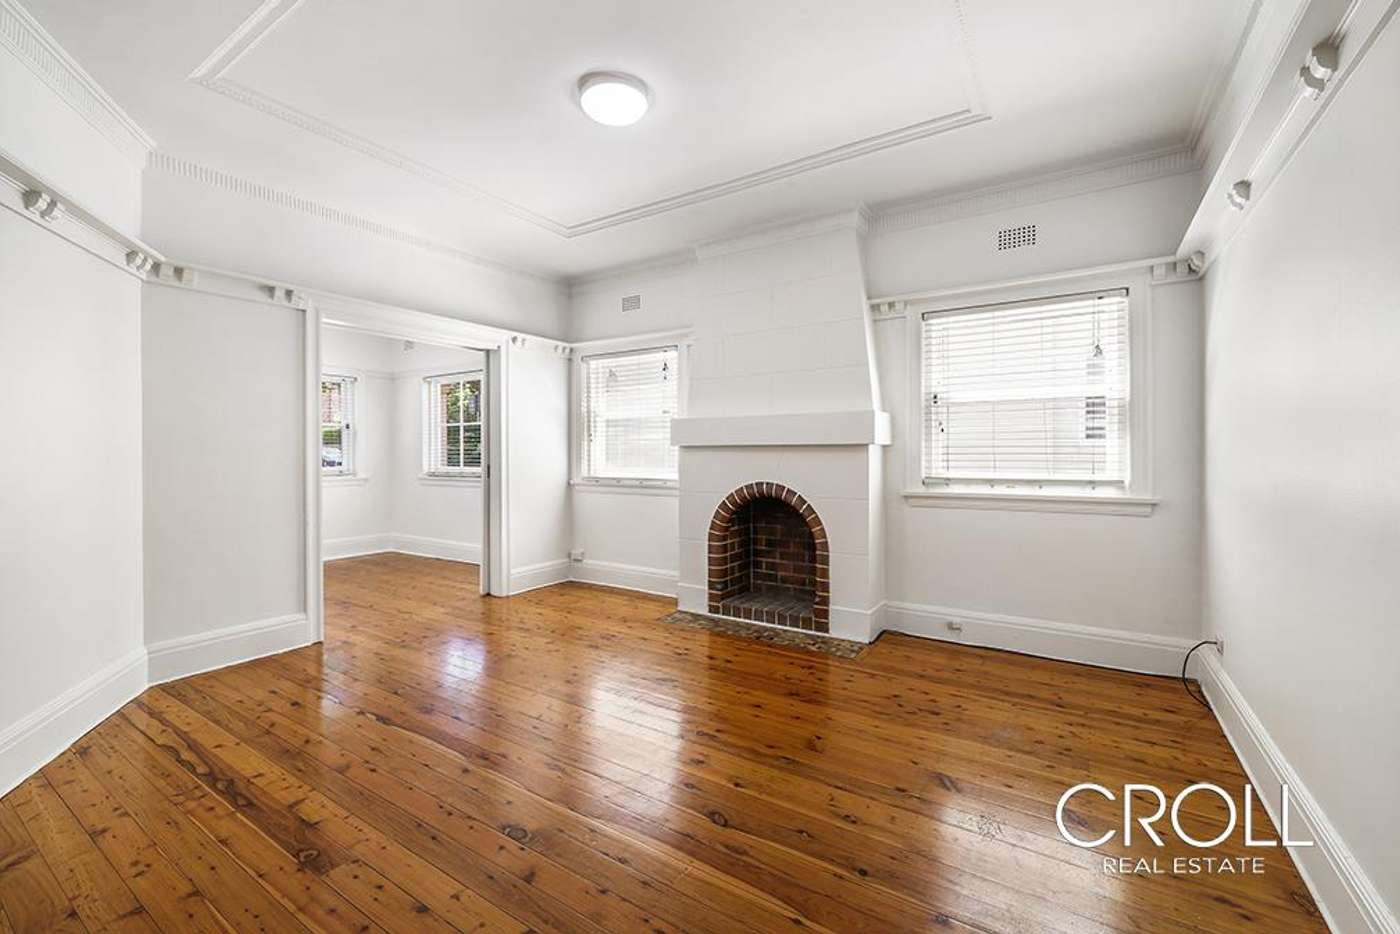 Main view of Homely apartment listing, 2/23 Barry Street, Neutral Bay NSW 2089